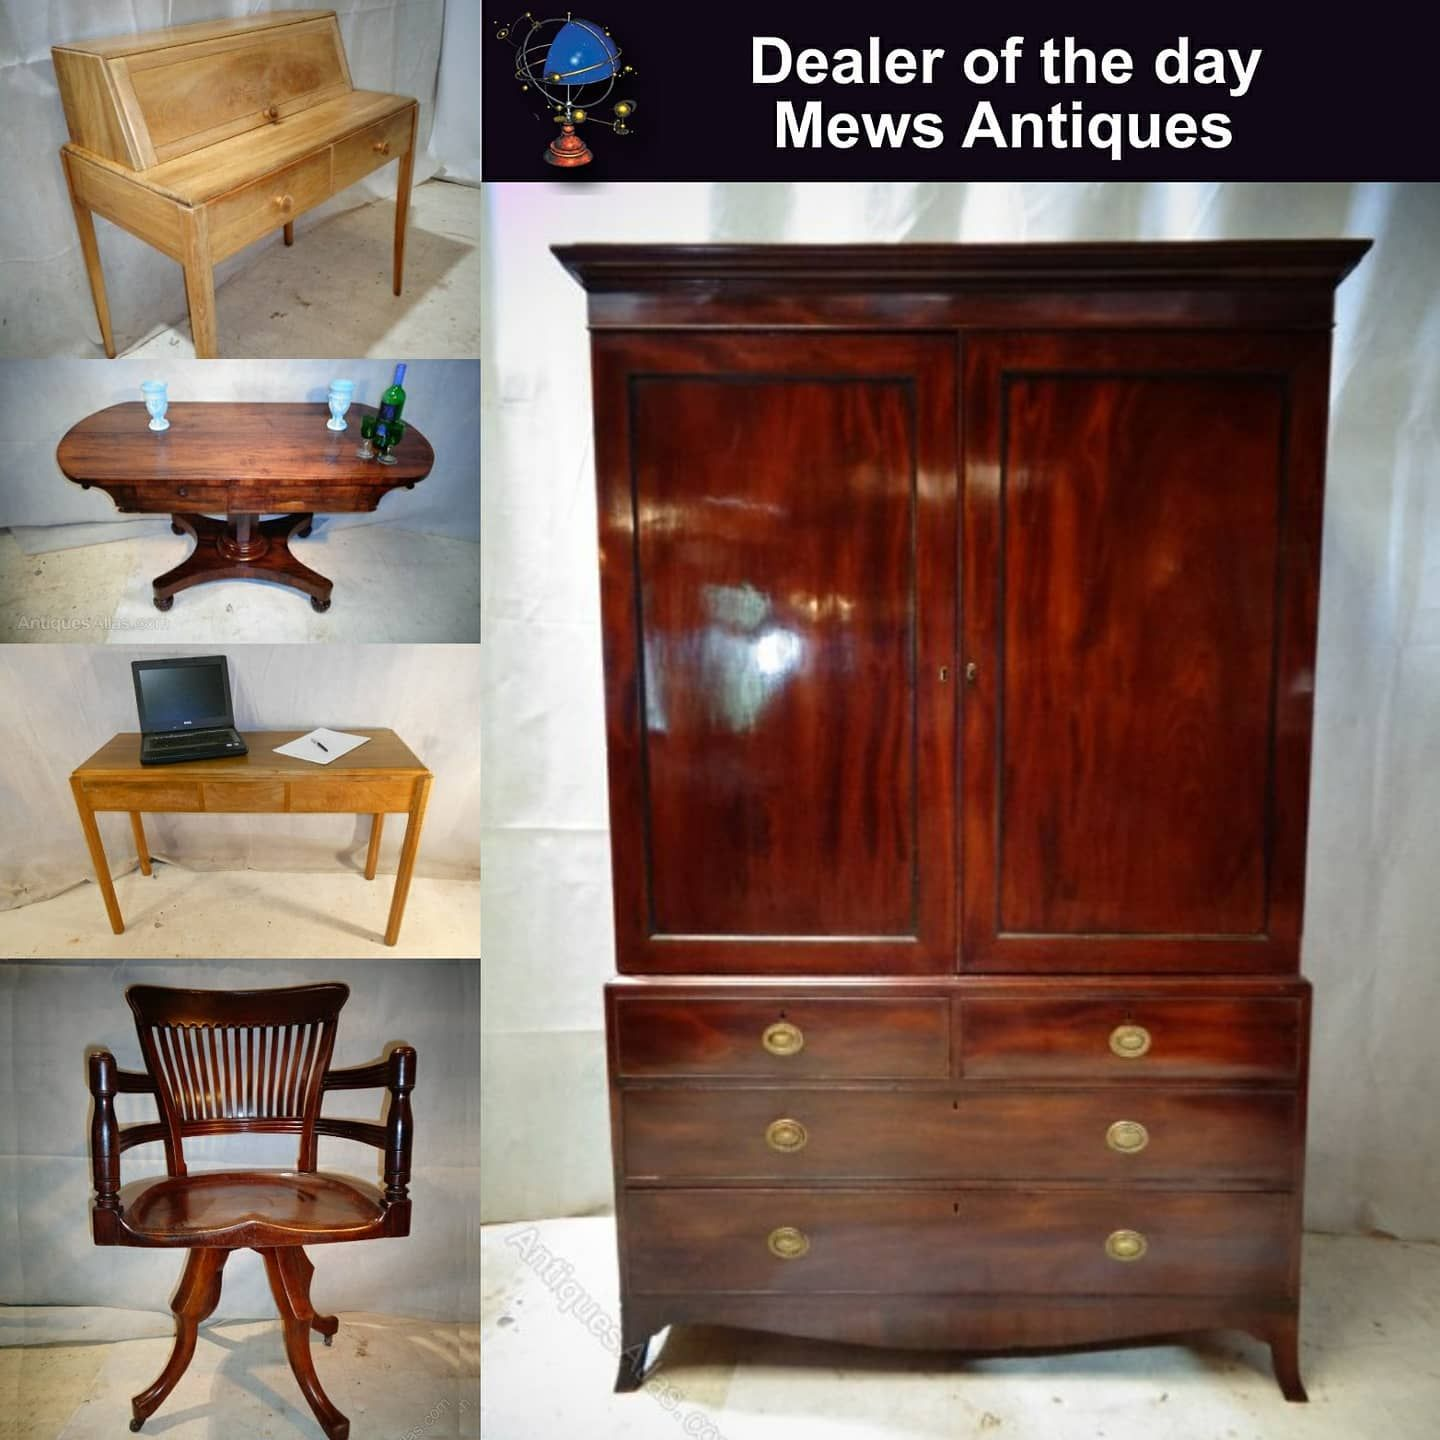 The Antiques Atlas dealer of the day today was 'Mews Antiques'  They are a family firm with over 30 years experience and have a large warehouse with viewing by appointment. Specialists in Antique Furniture. Located in Droitwich Spa, Worcestershire.  #antiquefurniture #antiquedesks #antiquedeskoffice #officedesk #deskideas #deskswivelchair  #antiquewardrobe